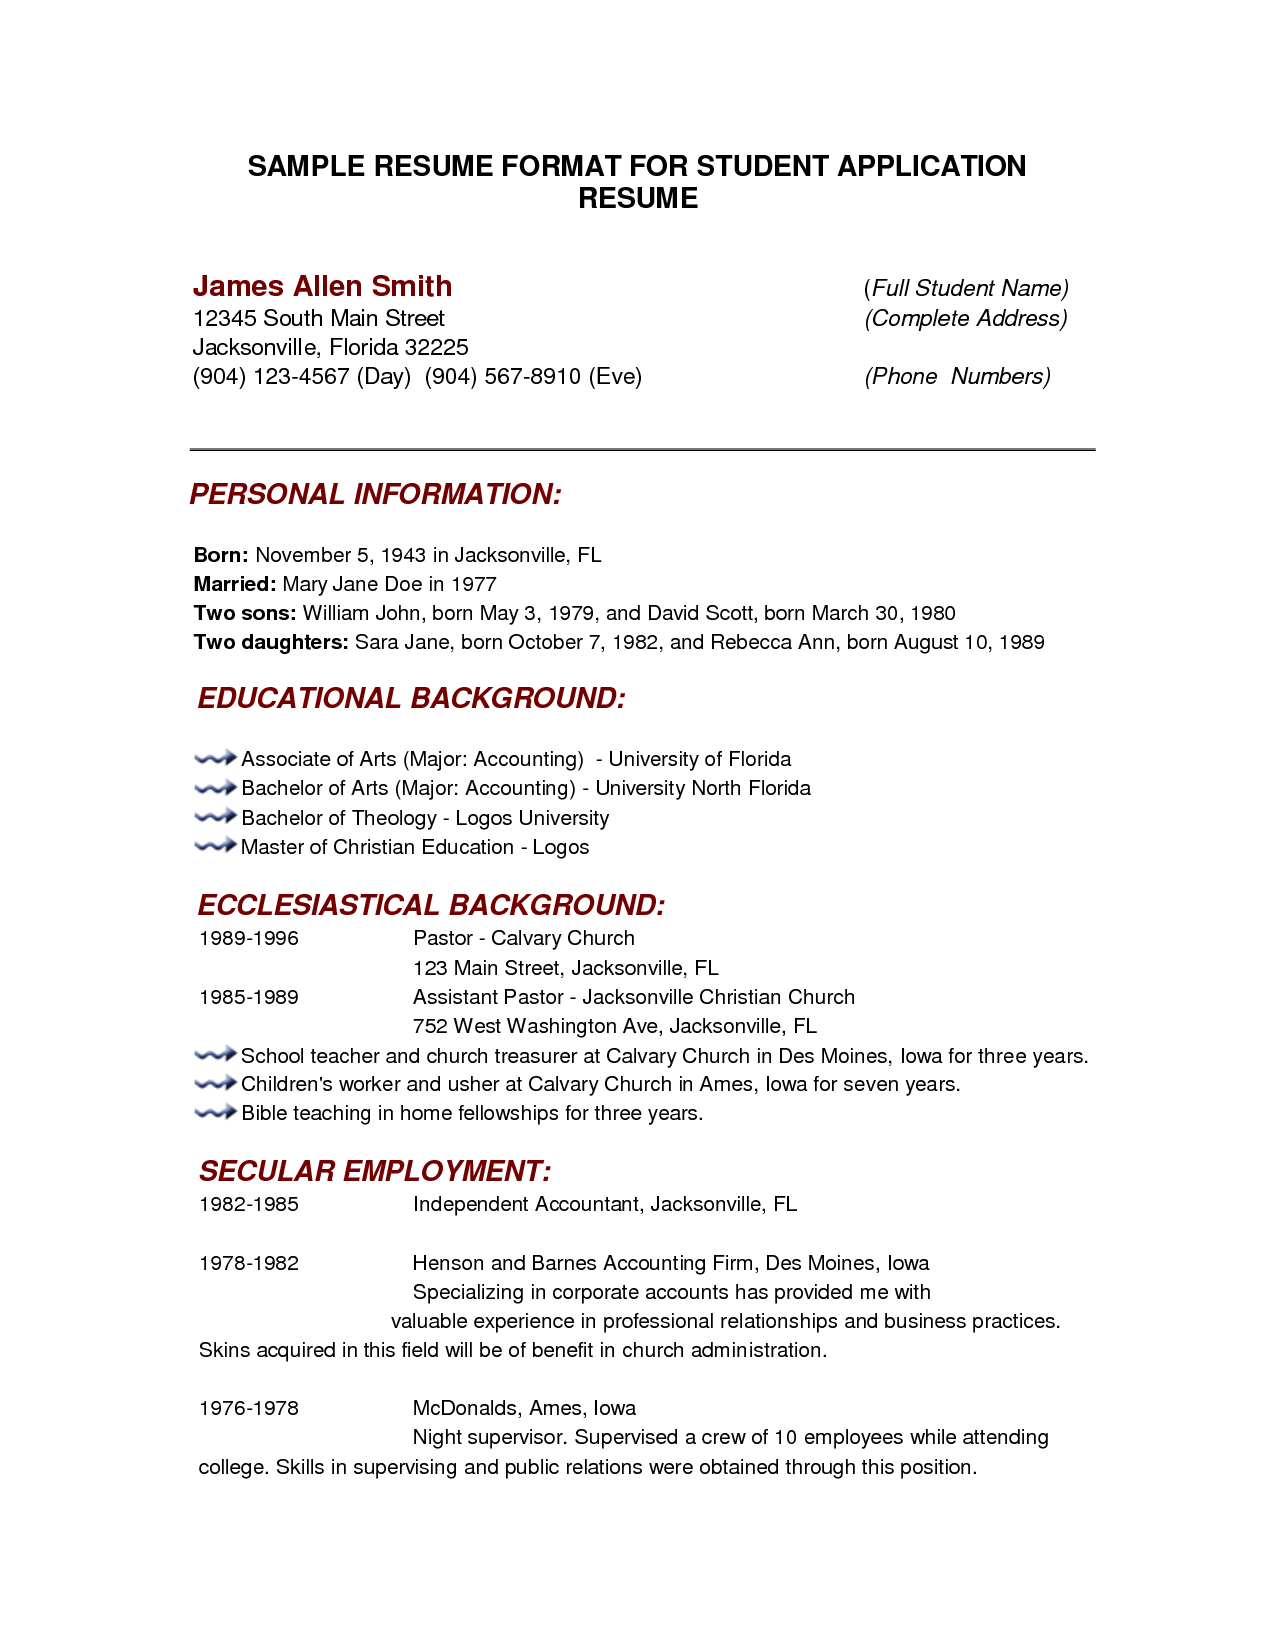 Full Block Resume Format Style For Business Letter Examples Basic Template Free  Samples  Free Basic Resume Examples